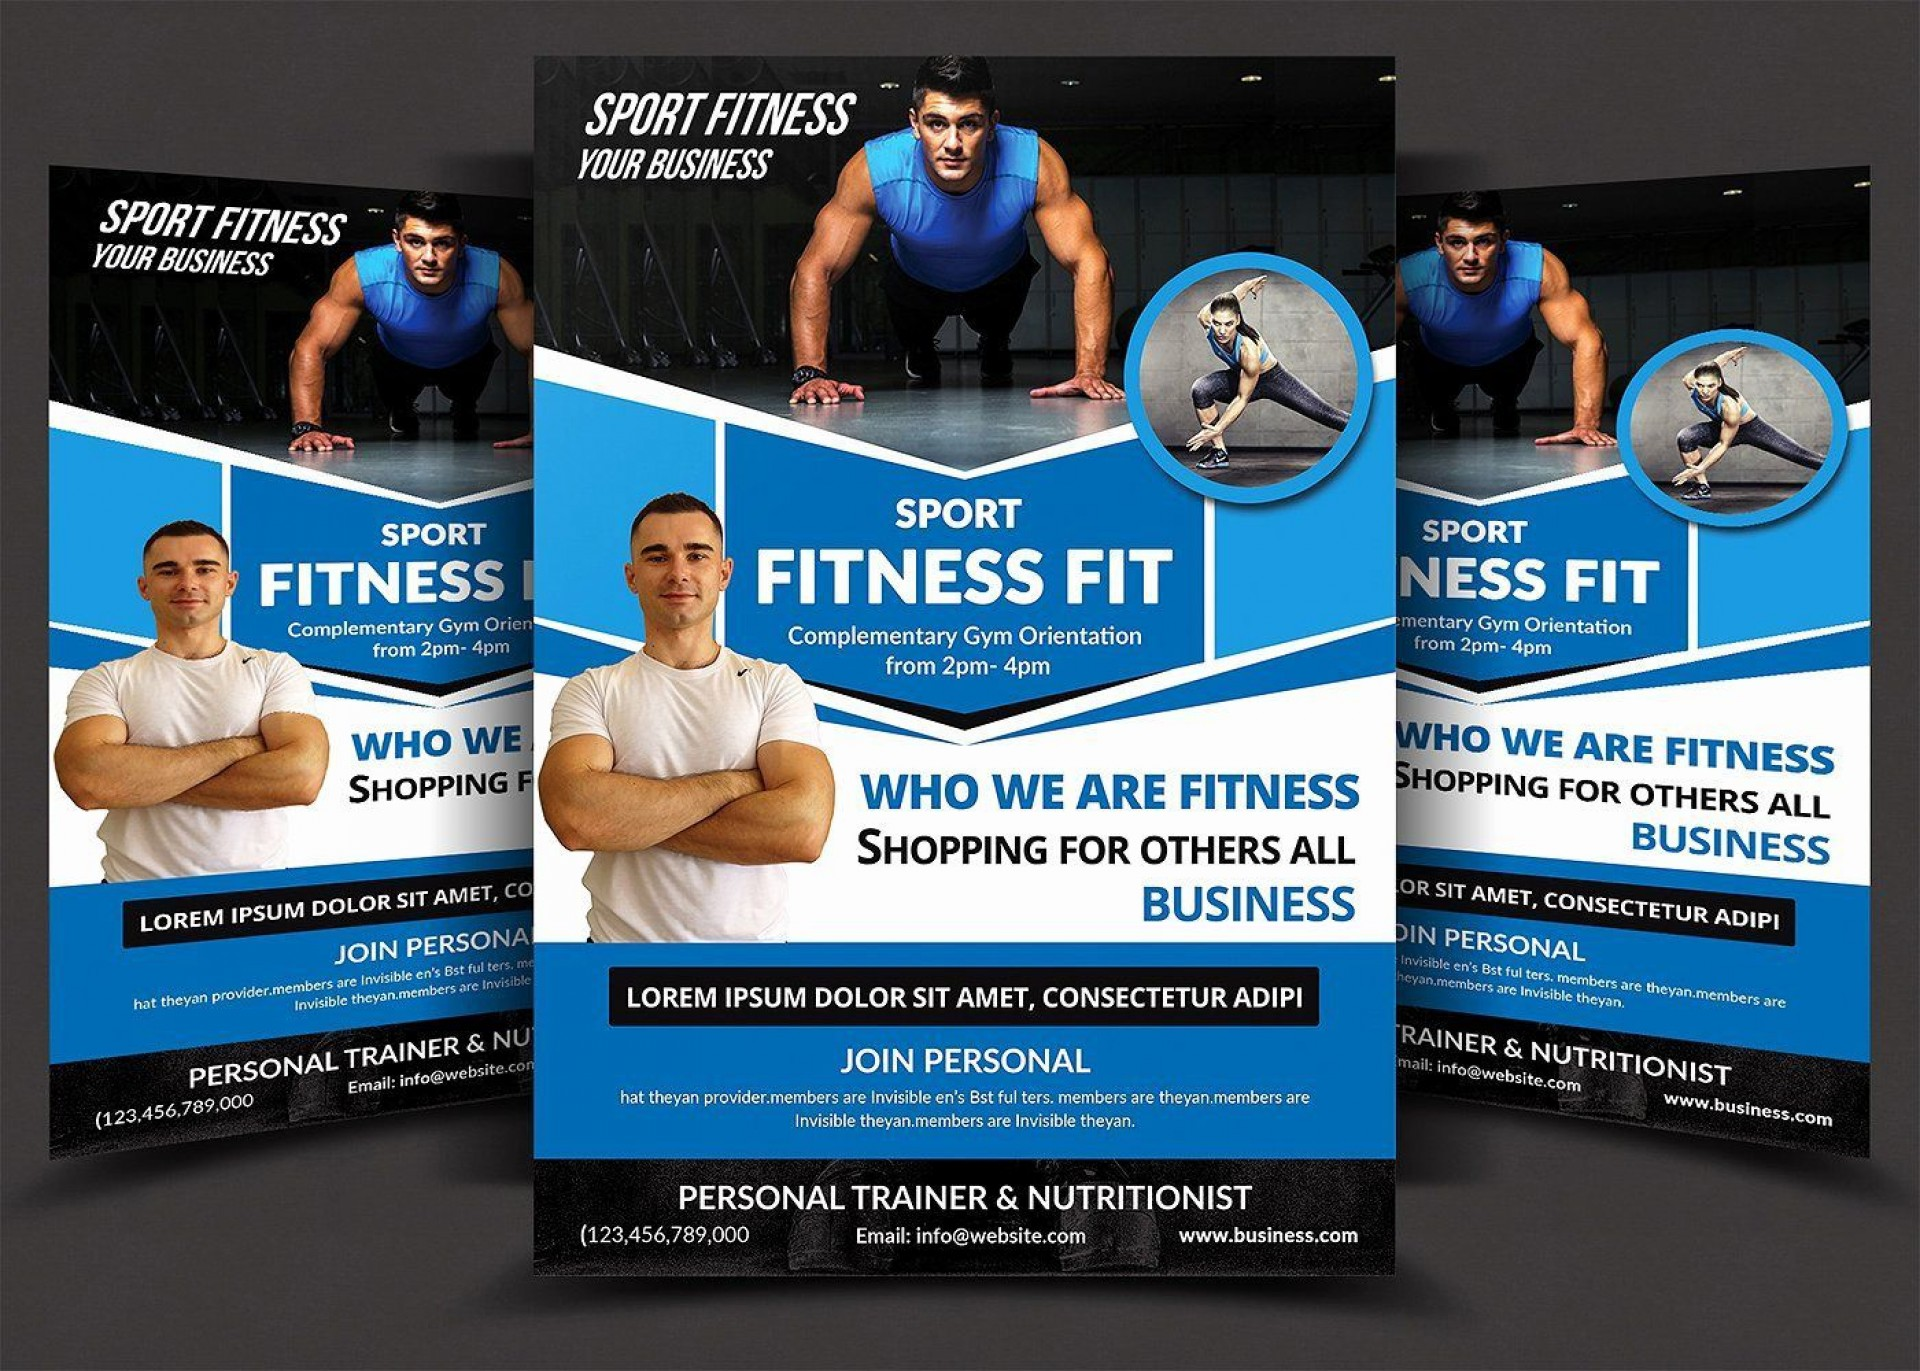 000 Awesome Personal Trainer Flyer Template High Definition  Word Psd1920